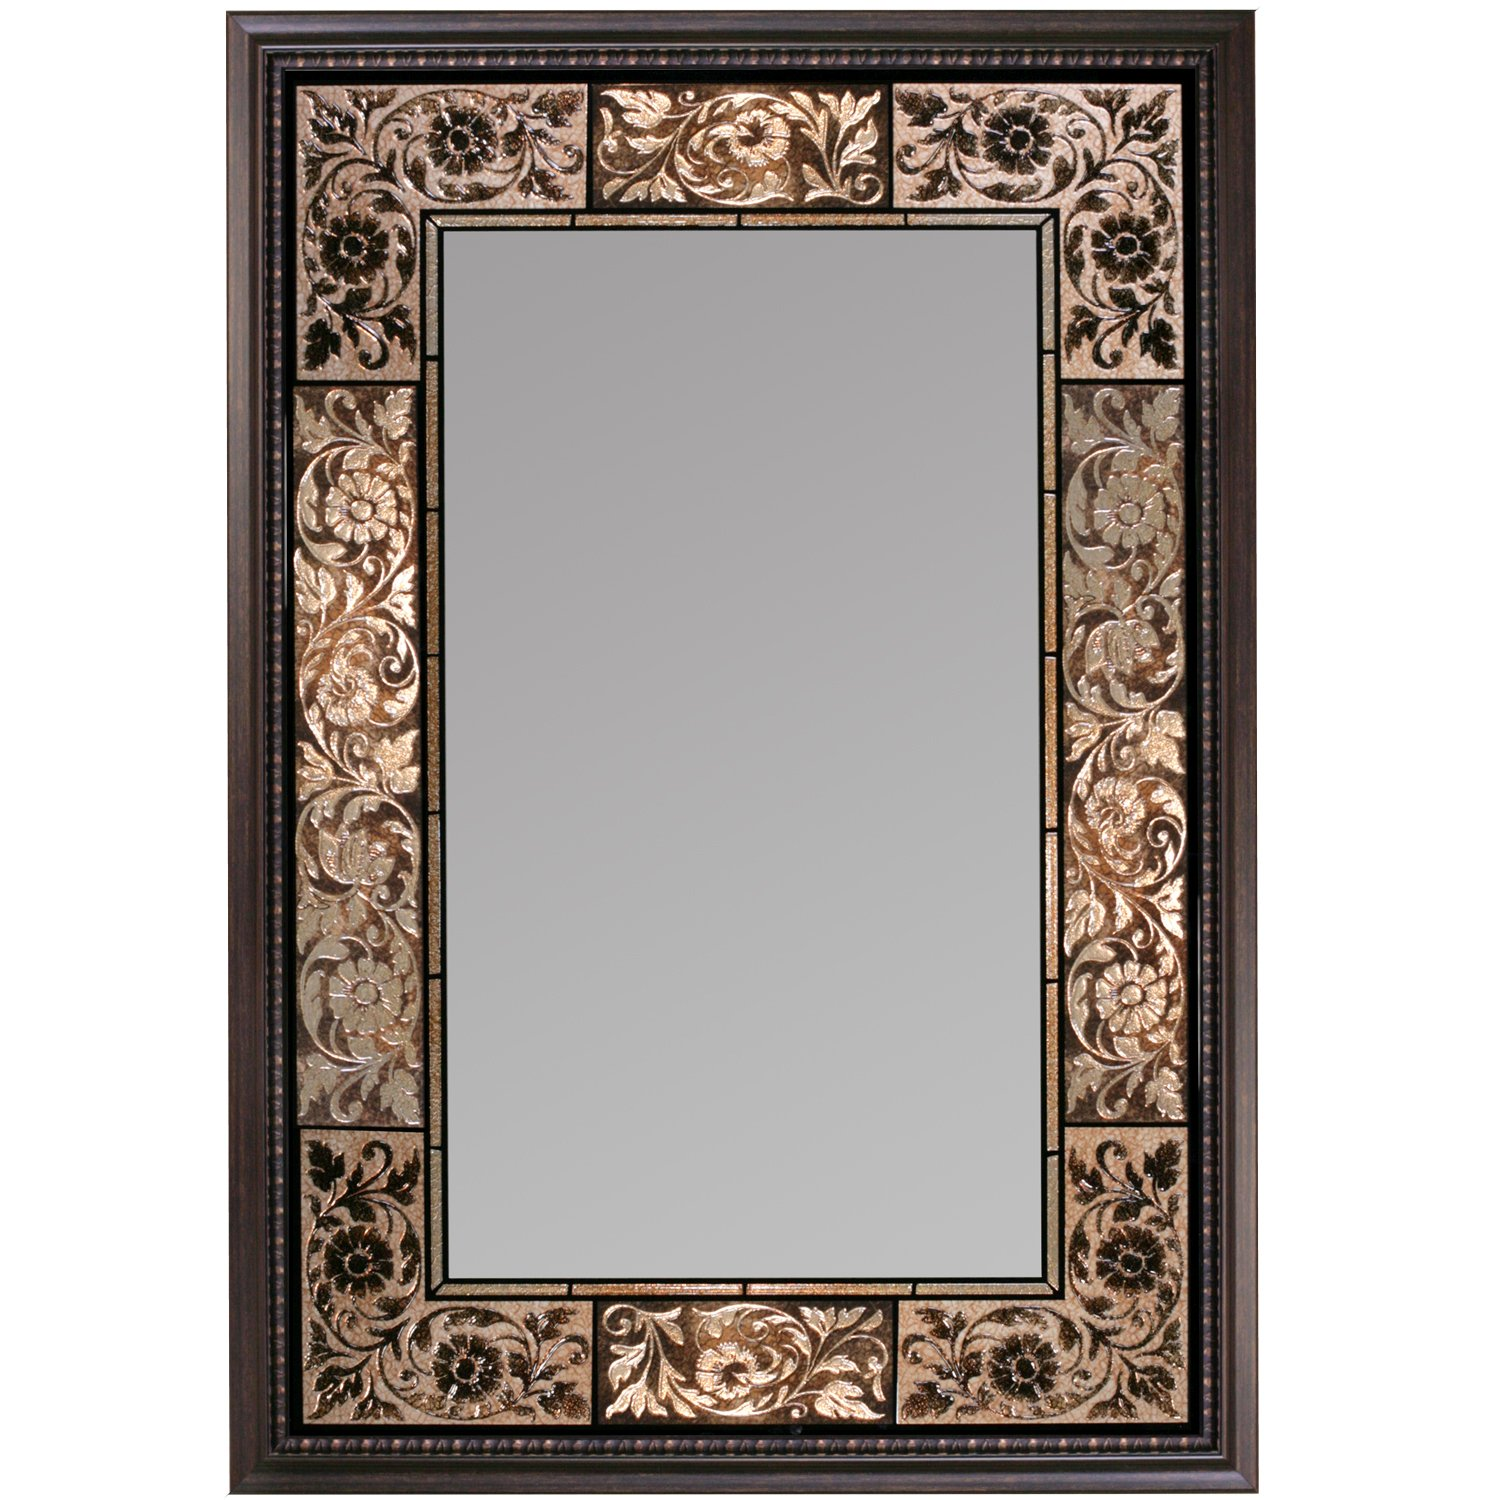 Decorative Bathroom Vanity Wall Mirrors : Vanity mirrors wall mounted french tile dark traditional